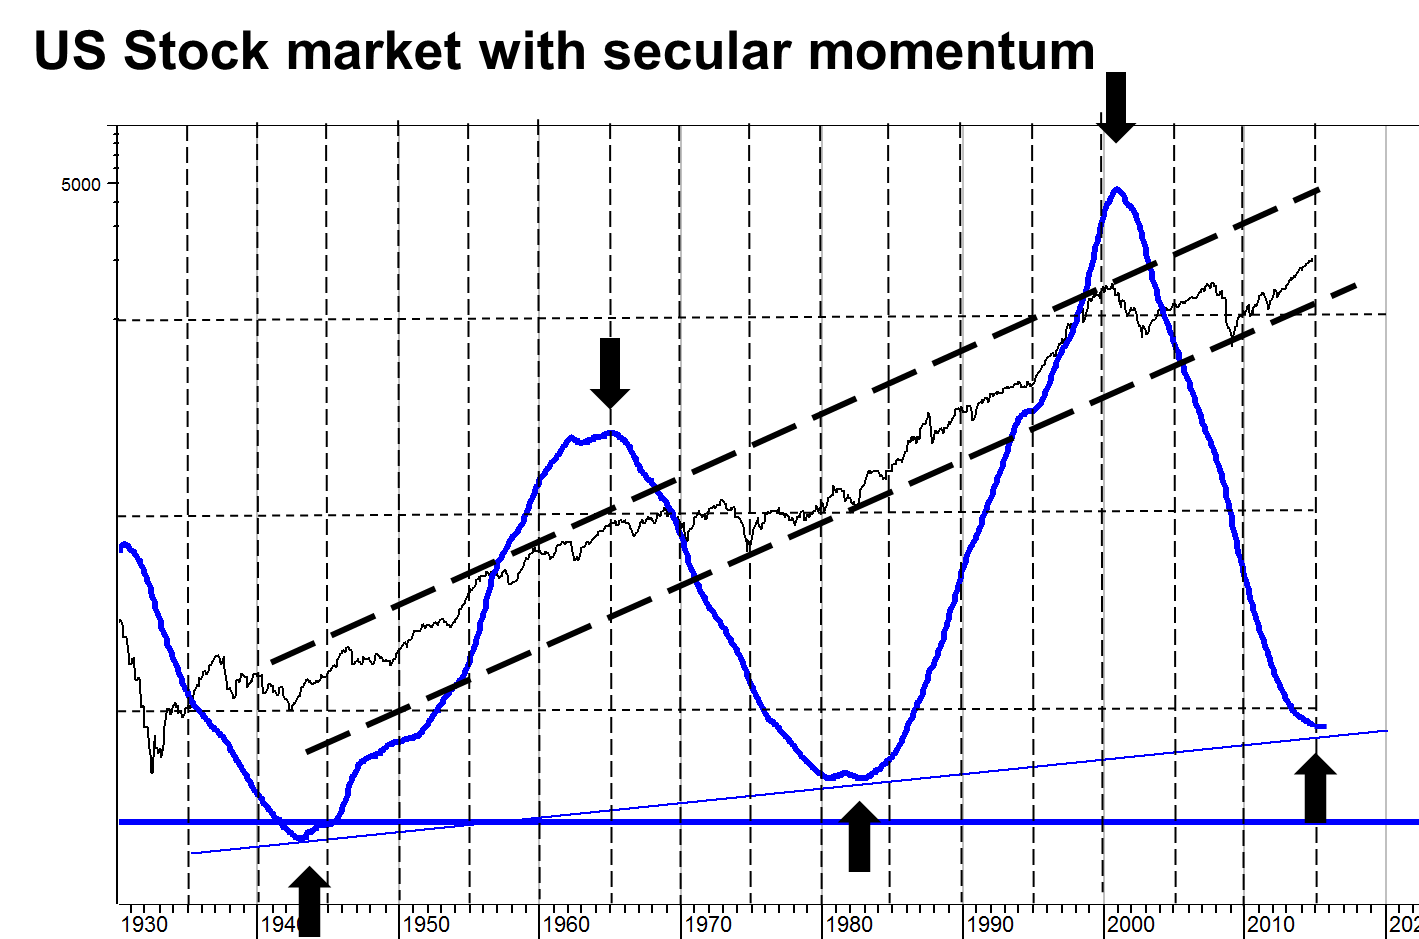 On this chart you can see that the decline in the Secular Momentum Indicator (marked blue on the right chart)has matched my forecast almost perfectly. Also you can see that my forecast in 2001 of a new secular bull market to start around 2010 has become stunningly accurate as the  S&P Index  entered this secular uptrend following the financial crisis in 2009. Furthermore, I did forecast the first bear market within this Triangle beginning in 2001 to last until 2002 or even 2004. As we know the first bear market ended in 2003.